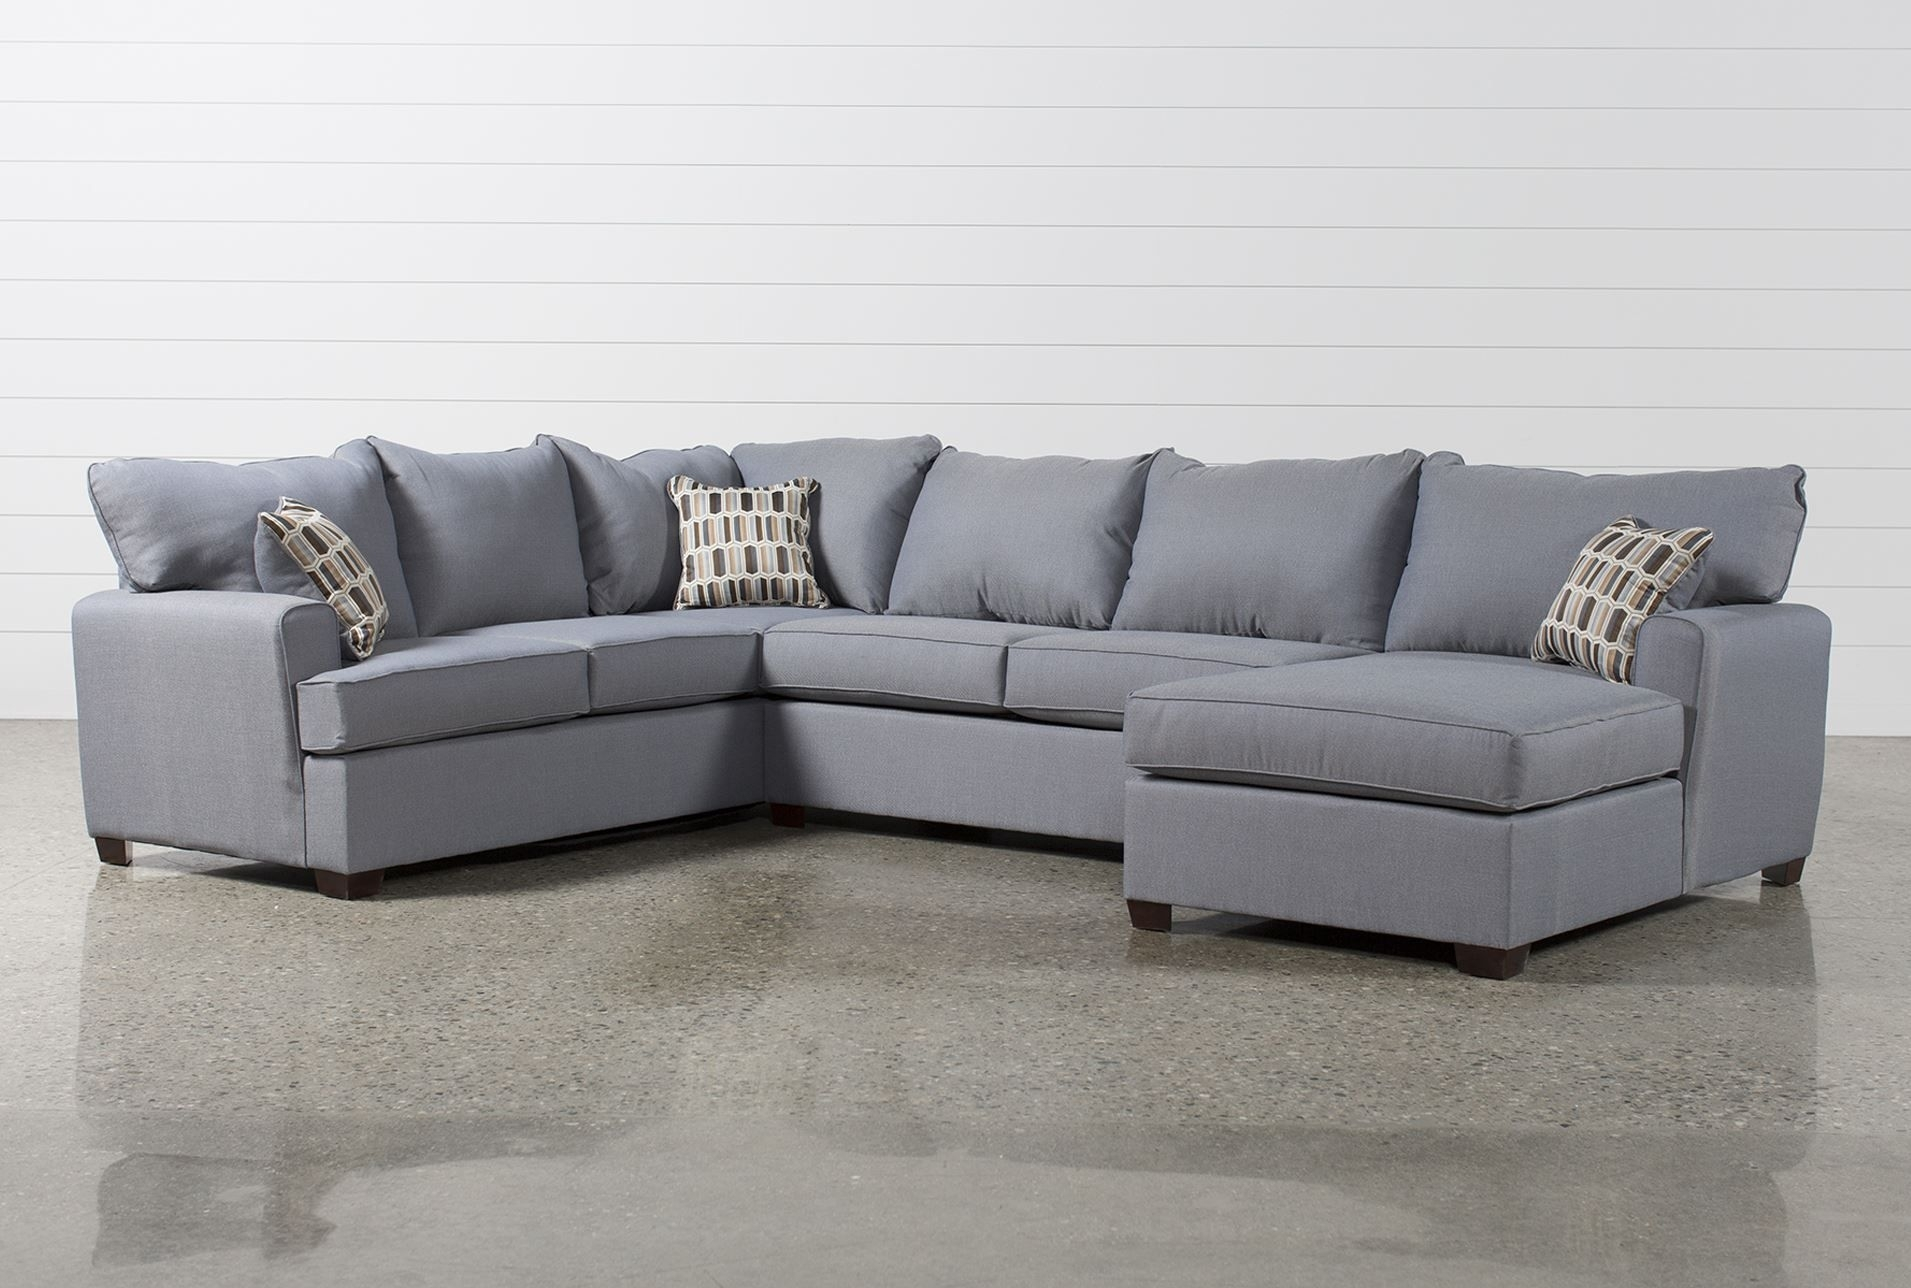 Bingham 3 Piece Sectional W/raf Chaise – Signature | For The Home Throughout Mcdade Graphite 2 Piece Sectionals With Laf Chaise (View 11 of 25)